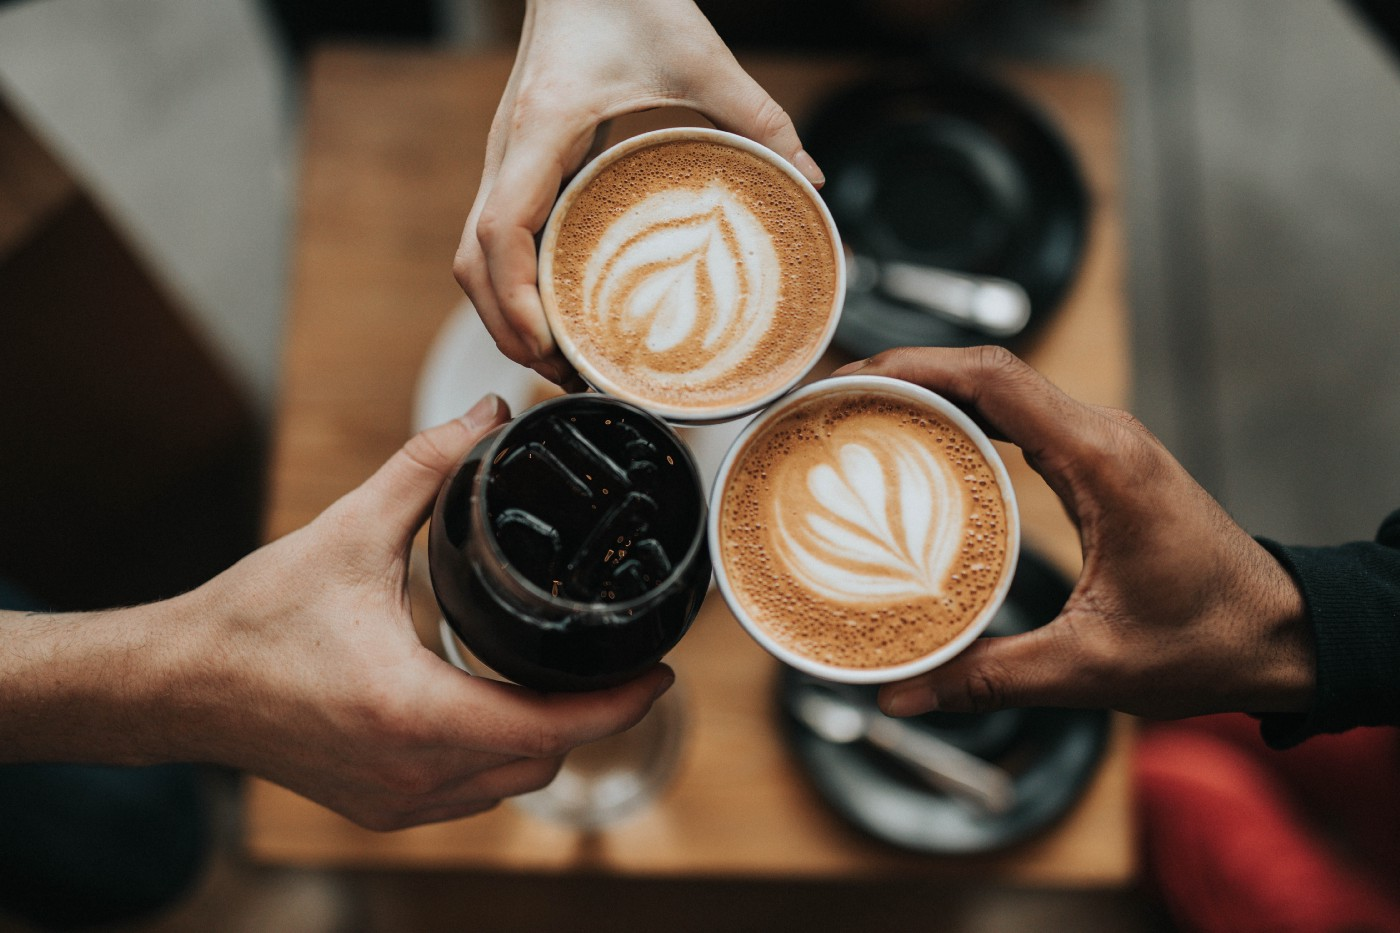 Three people toasting with three cups of coffee